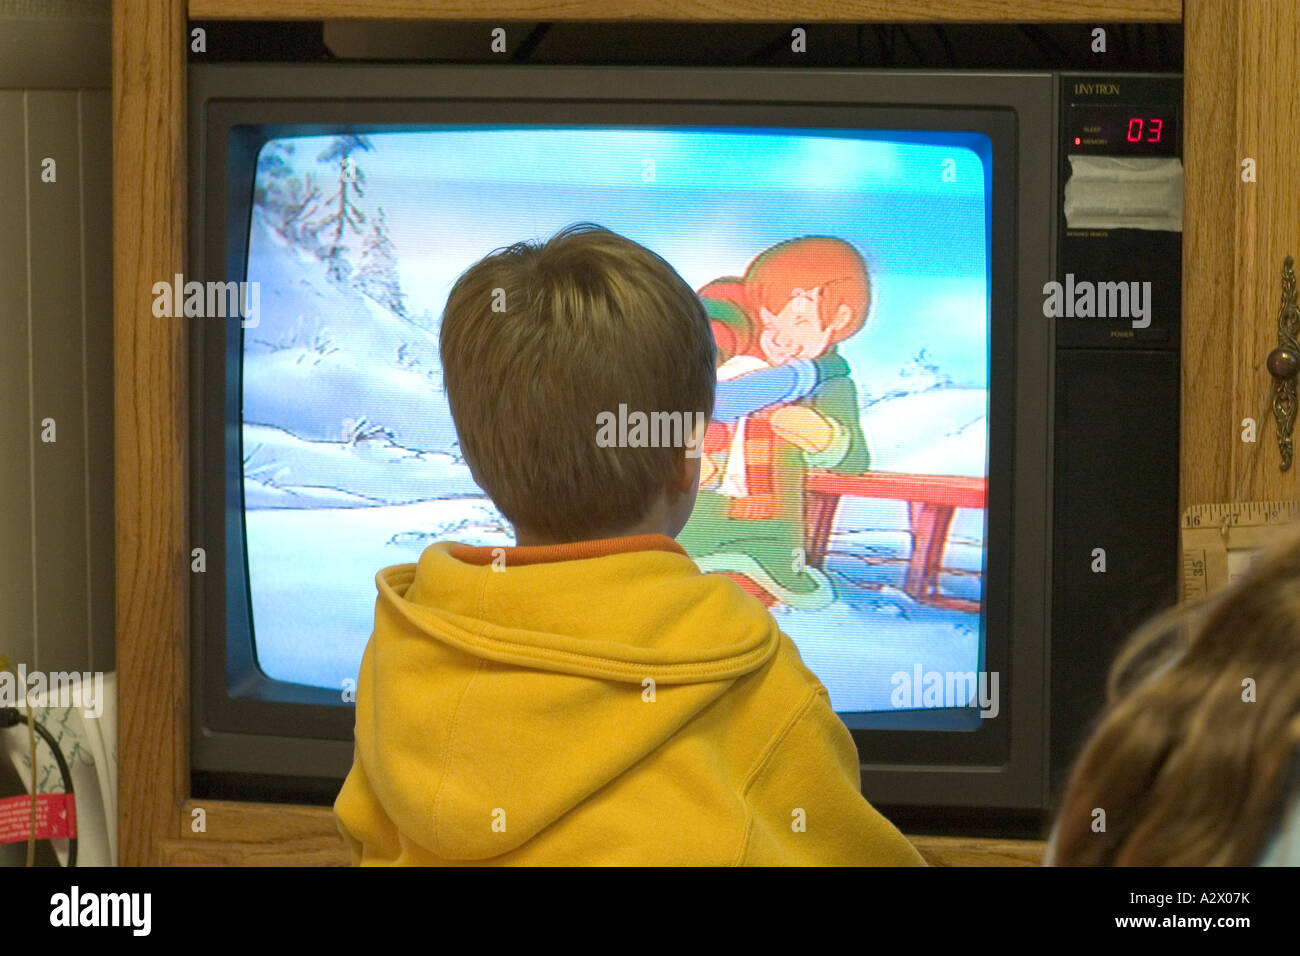 Boy age 5 watching cartoons on TV. Downers Grove Illinois IL USA - Stock Image